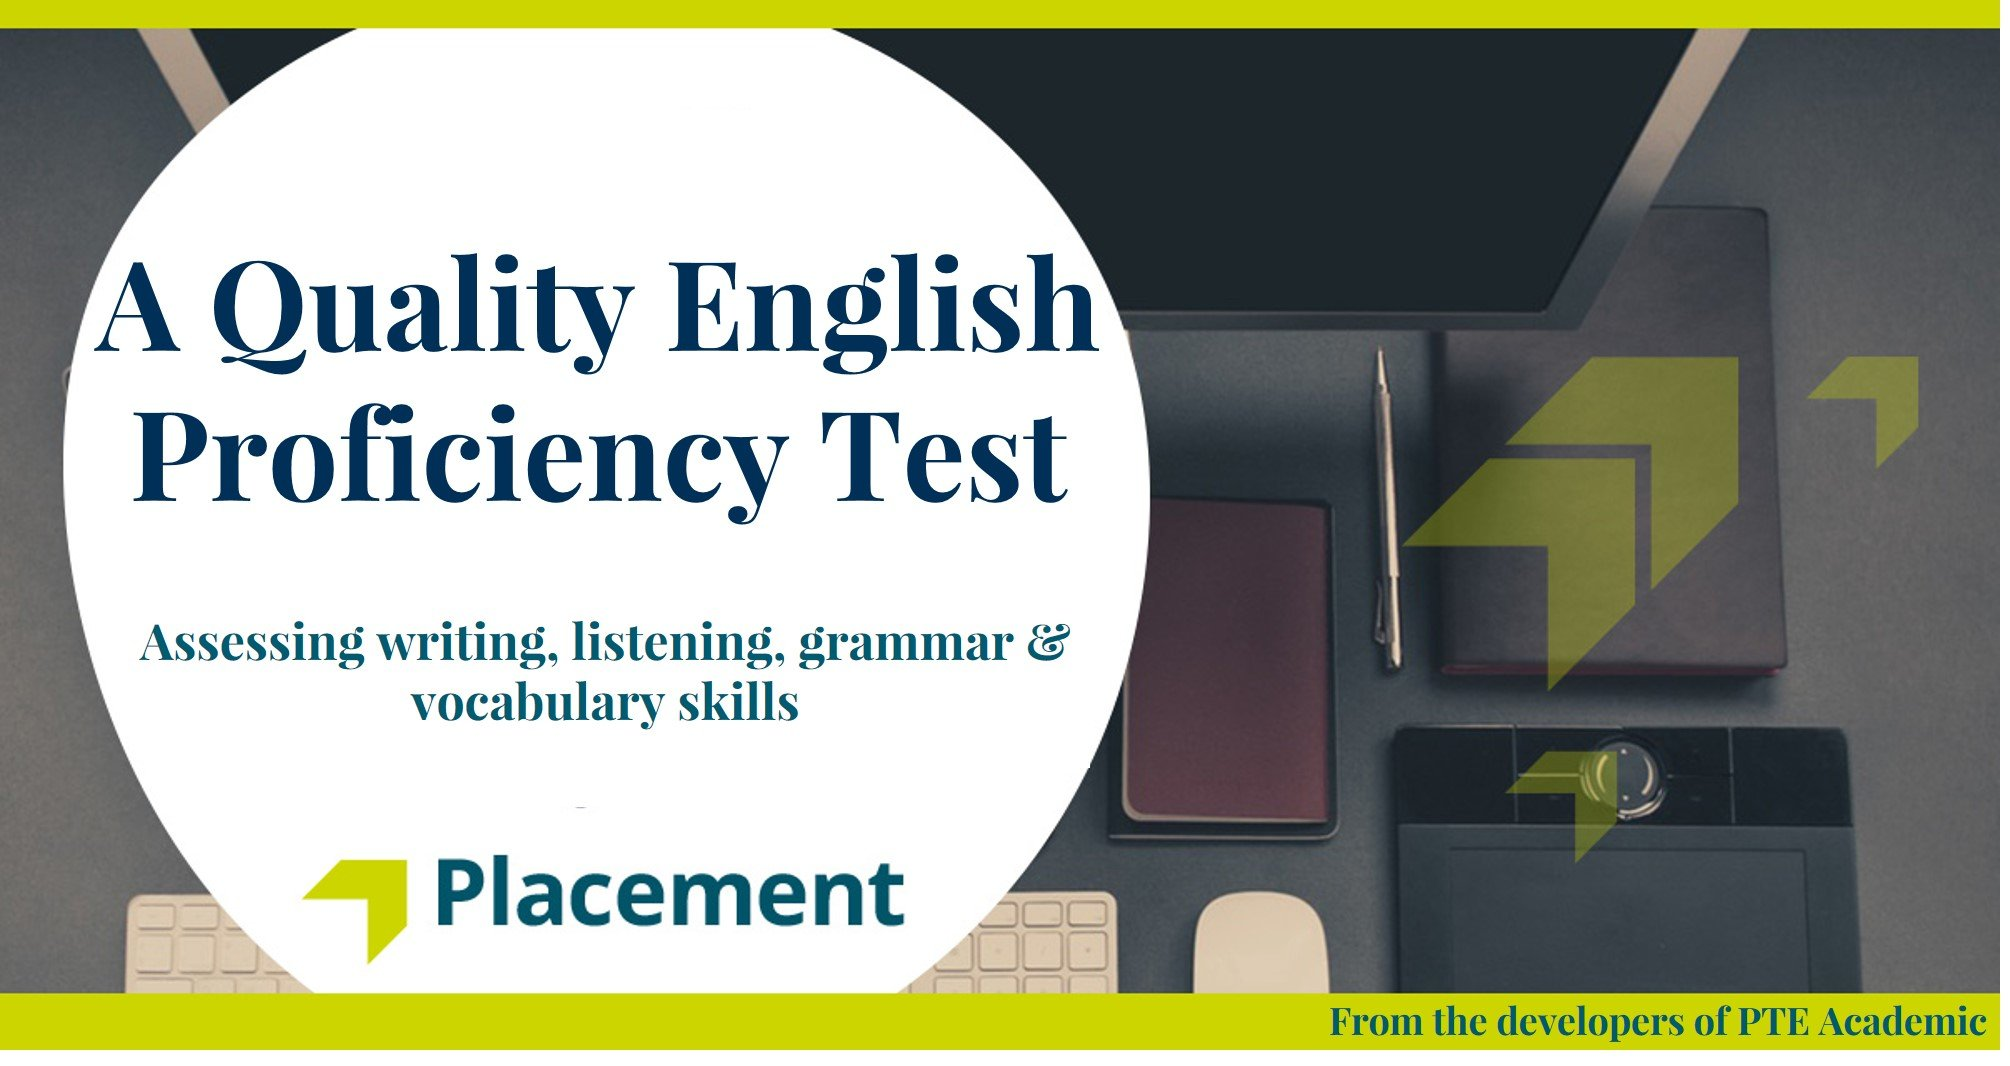 Pearson English Placement Test - An English Proficiency Diagnostic (Without Speaking Skills Analysis)